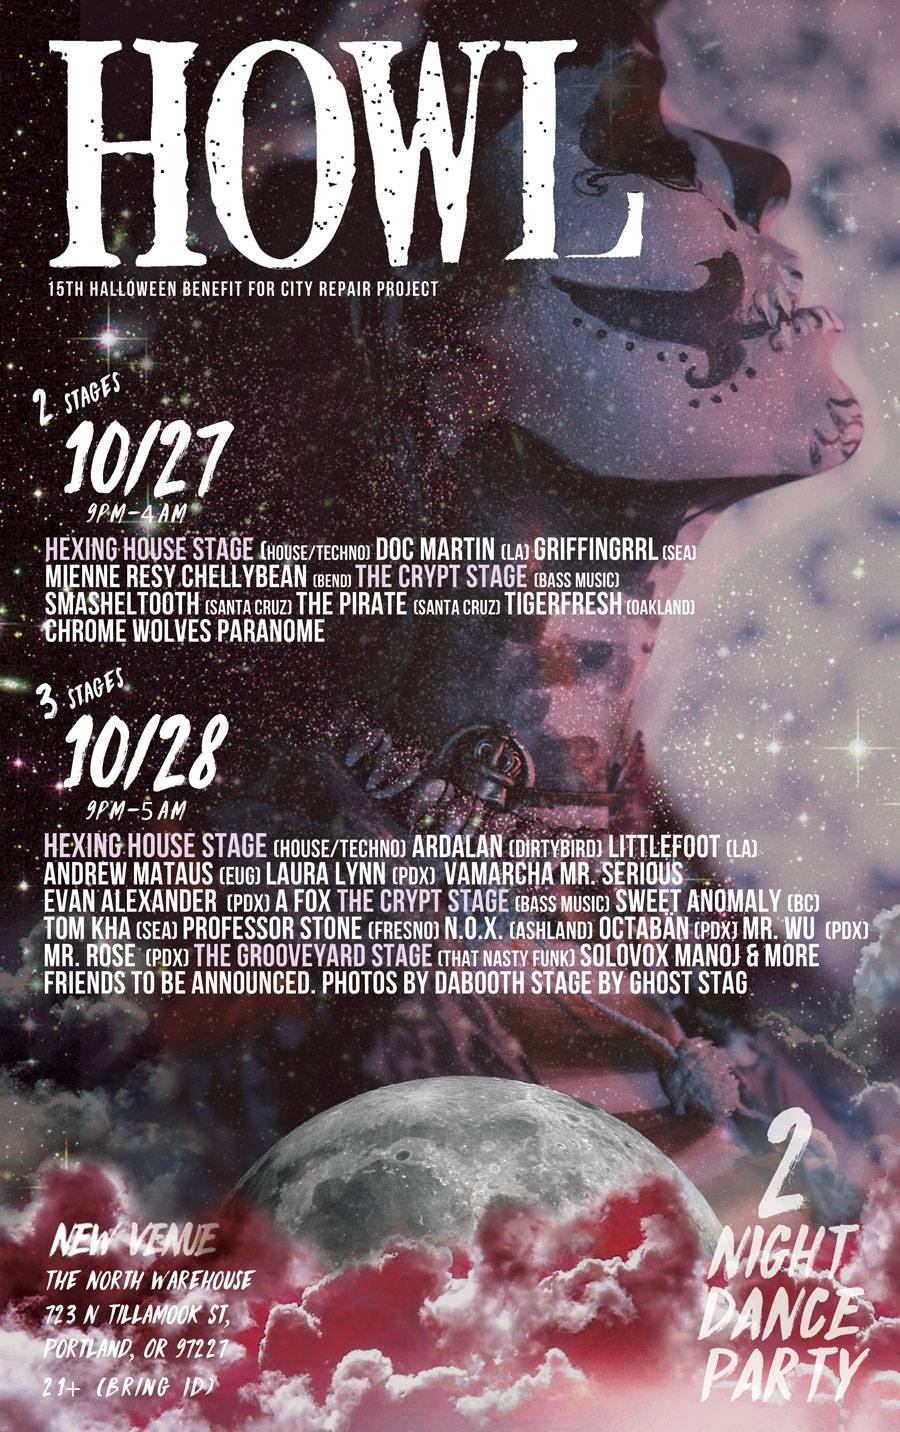 Portland Howl 2017 Halloween Party @ The North Warehouse | 2 ...